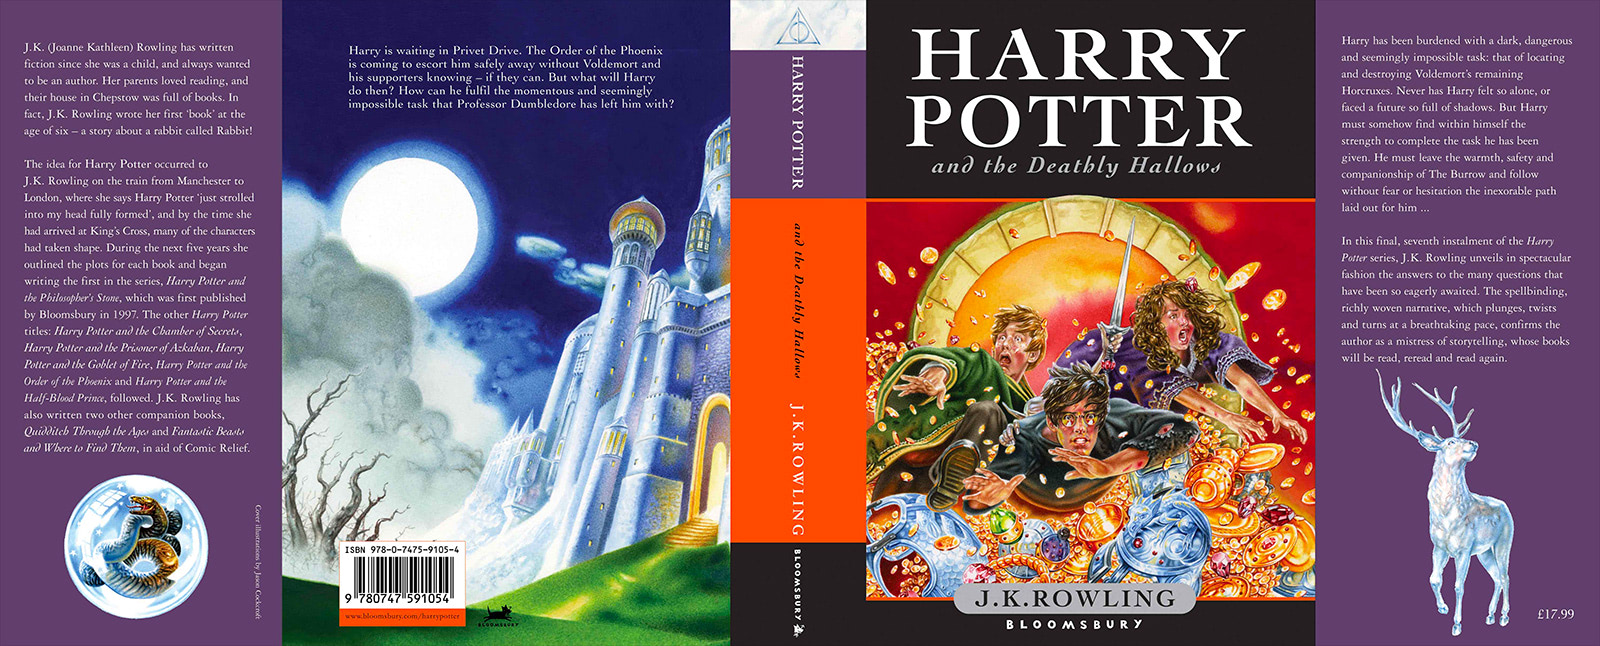 'Deathly Hallows' UK children's edition (full jacket)